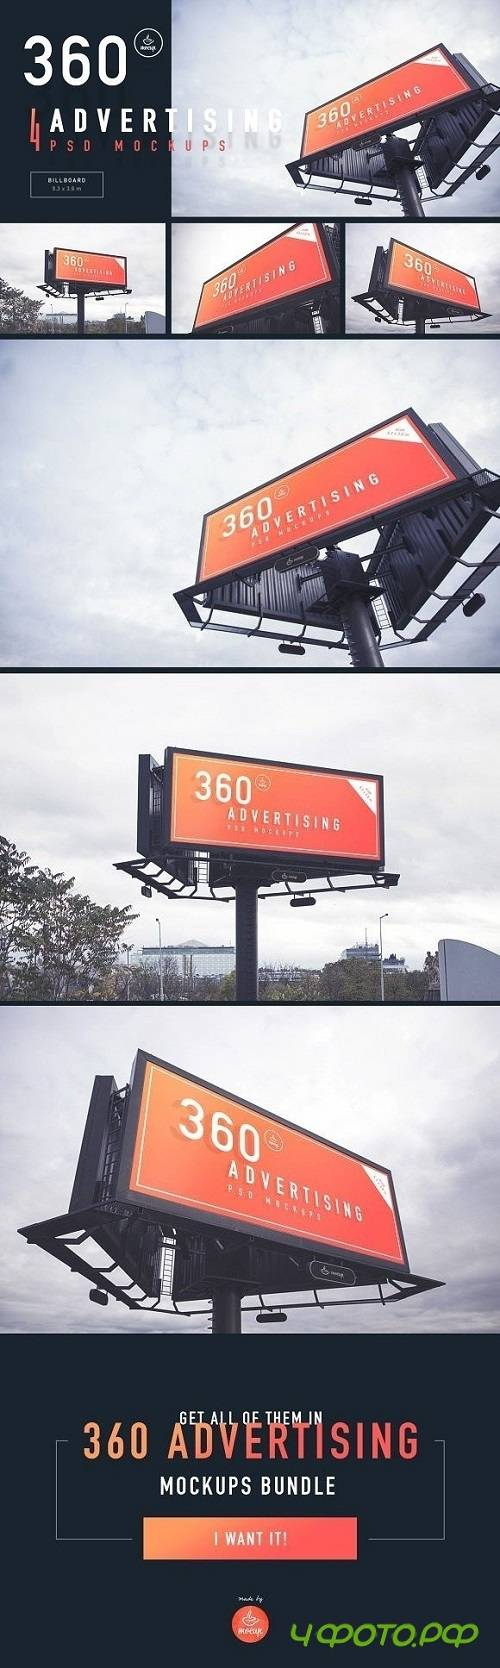 Billboard - 360 Advertising Mockups 2079118